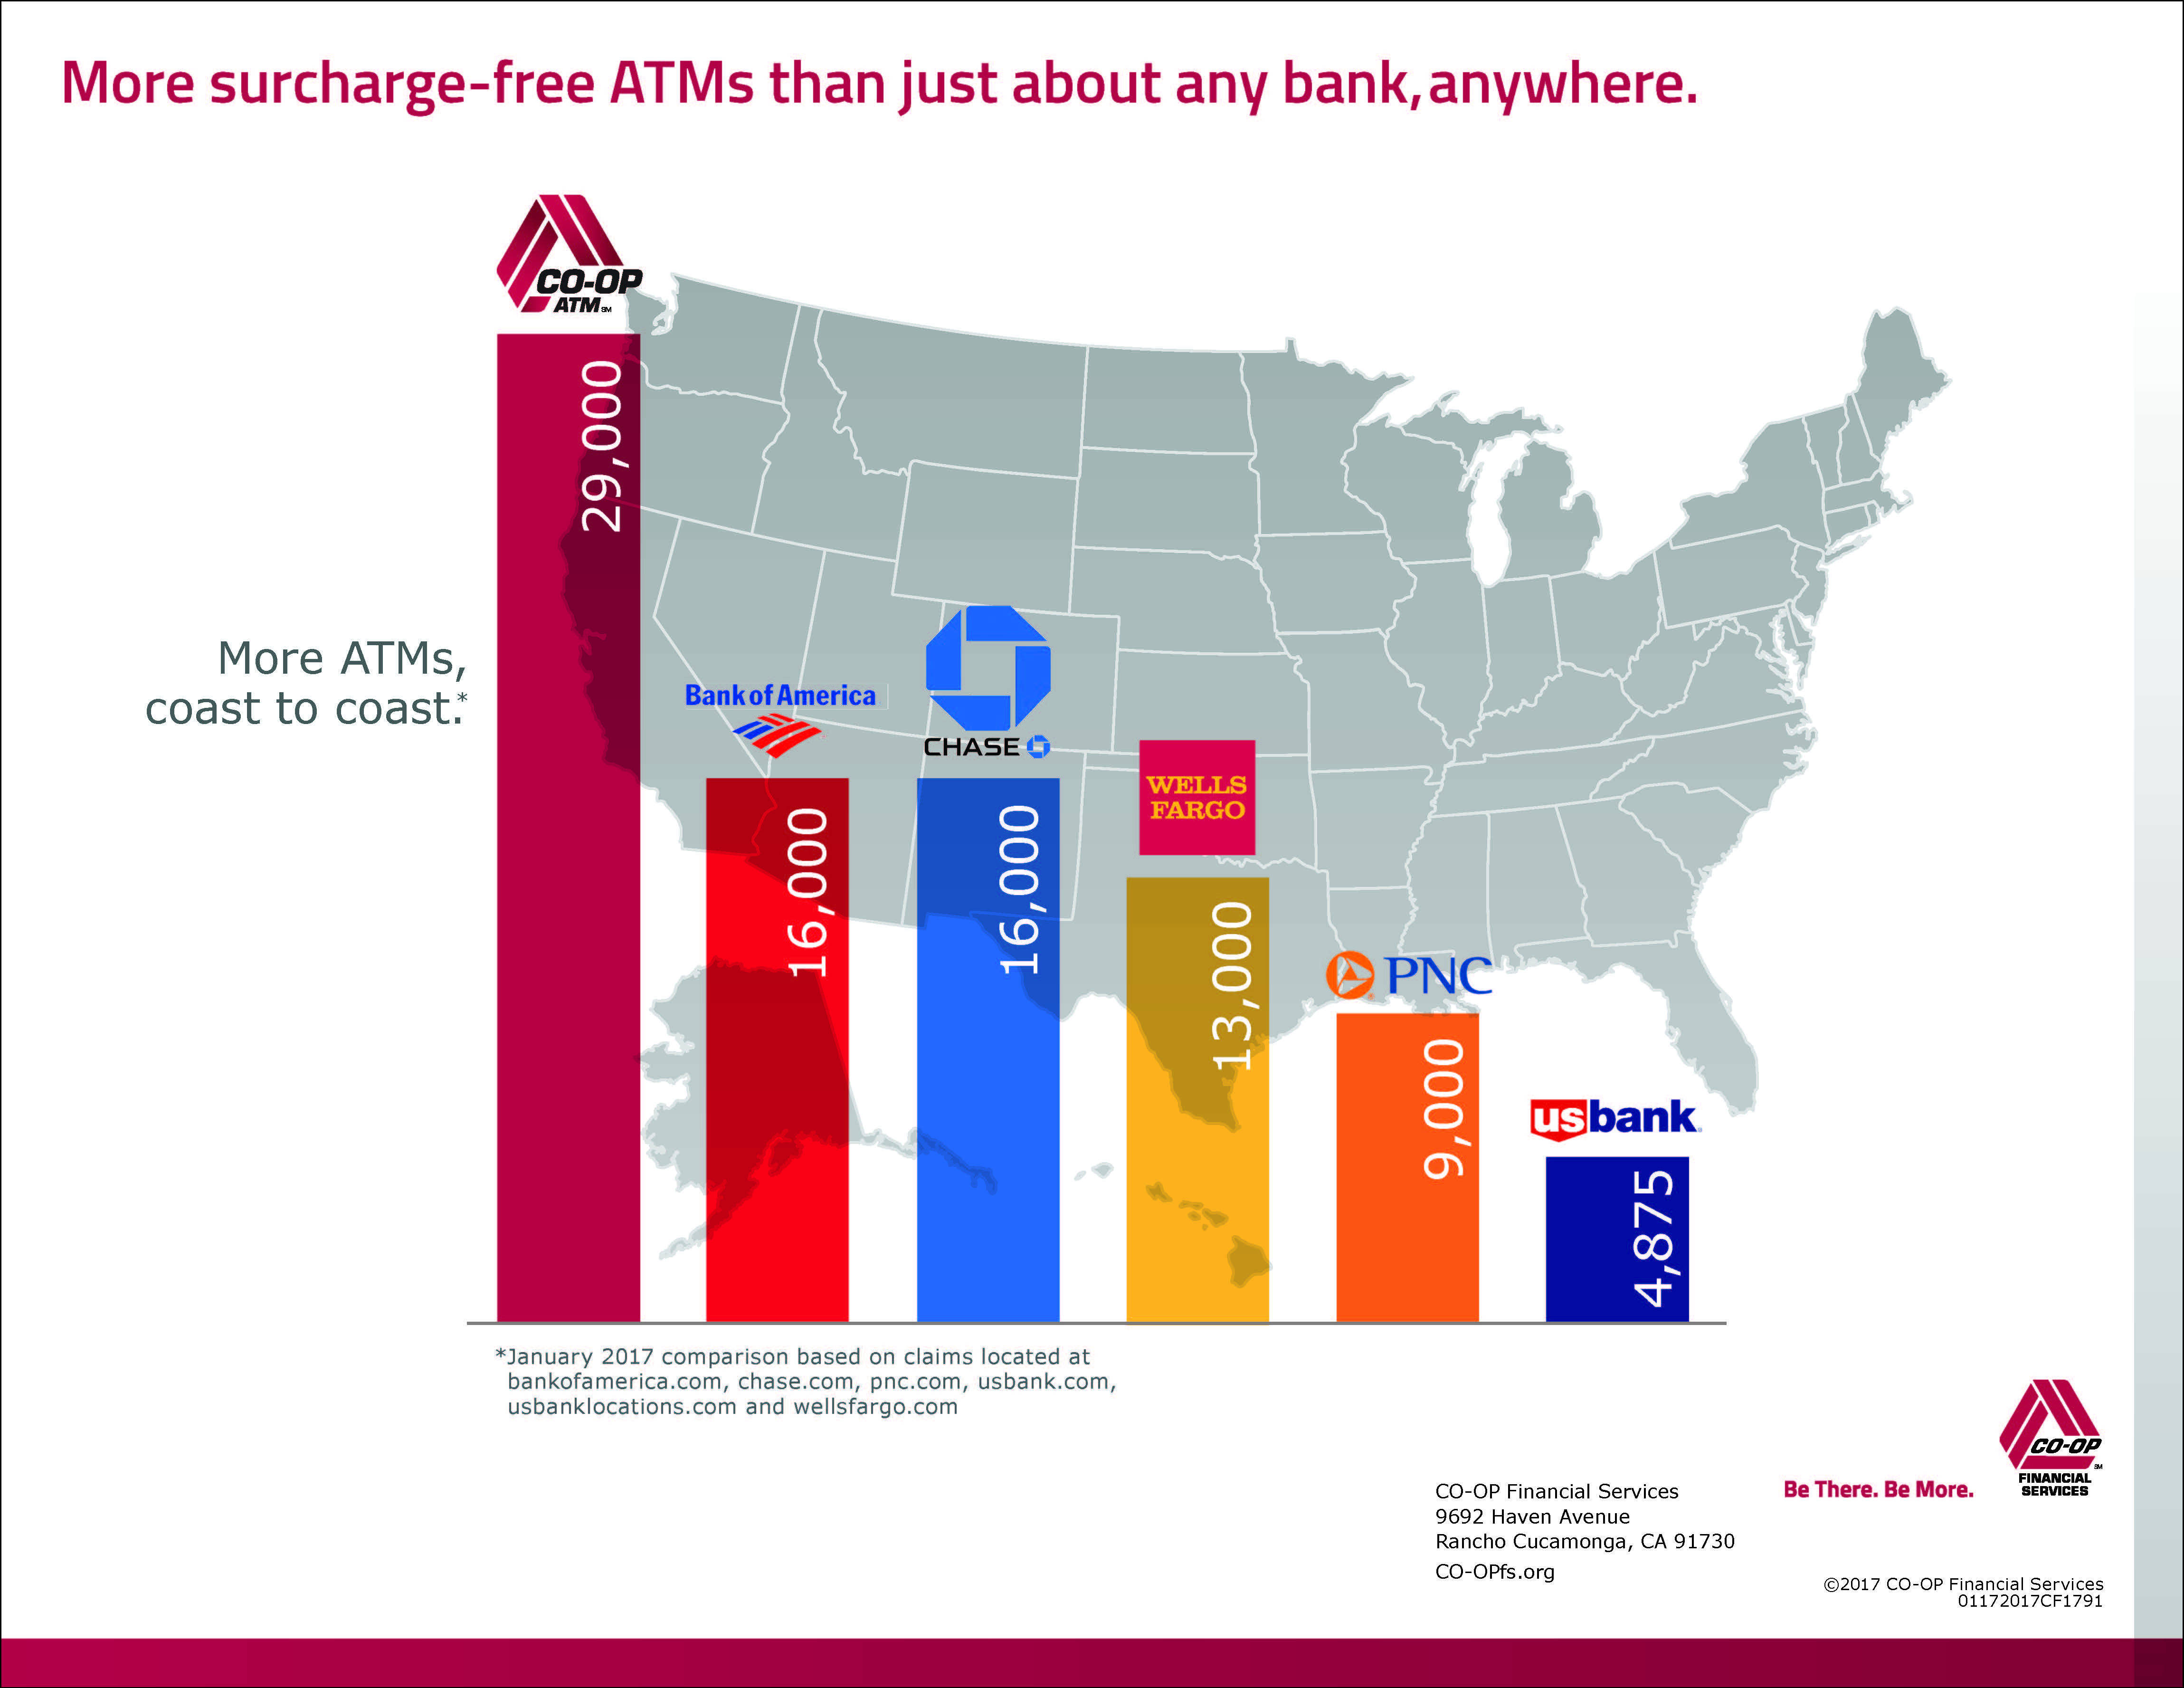 Fast credit union atms the co op network has more surcharge free atms than just about any bank 1betcityfo Choice Image